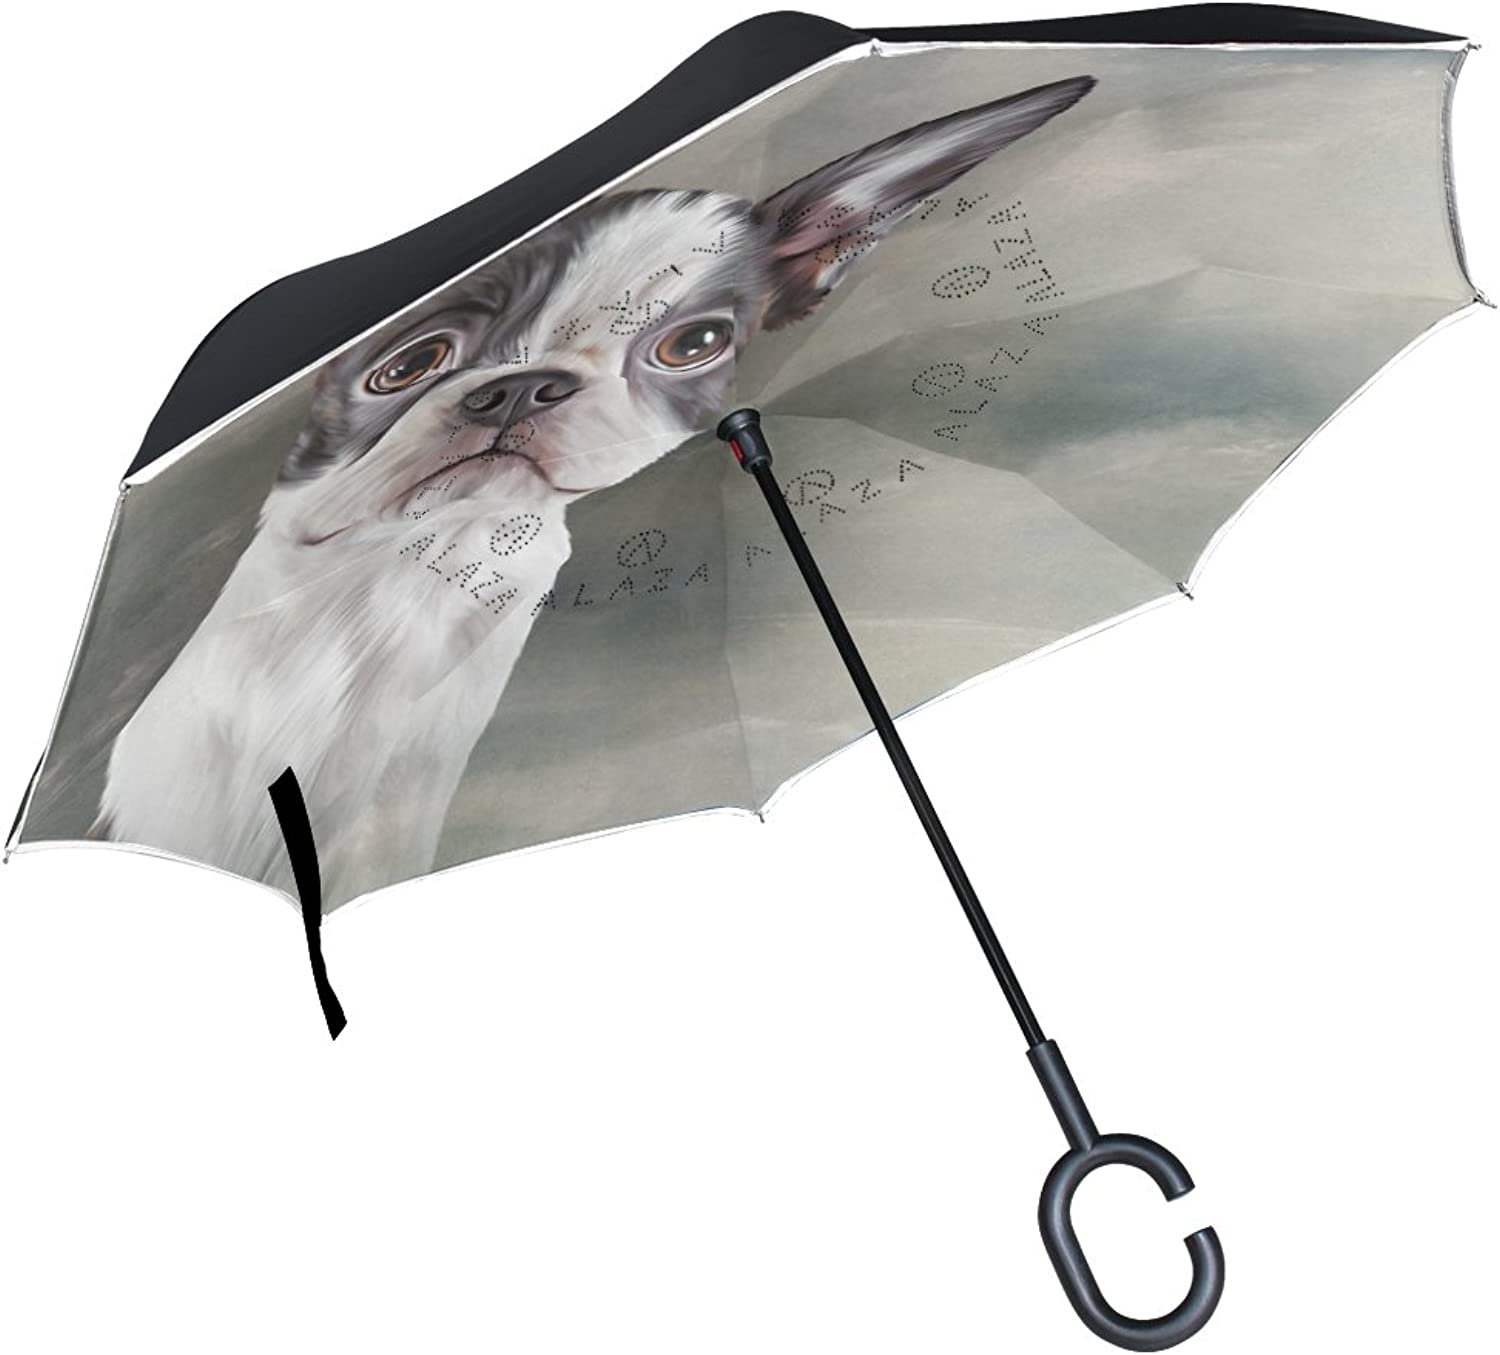 Mydaily Double Layer Ingreened Umbrella Cars Reverse Umbrella Boston Terrier Dog Vintage Windproof UV Proof Travel Outdoor Umbrella